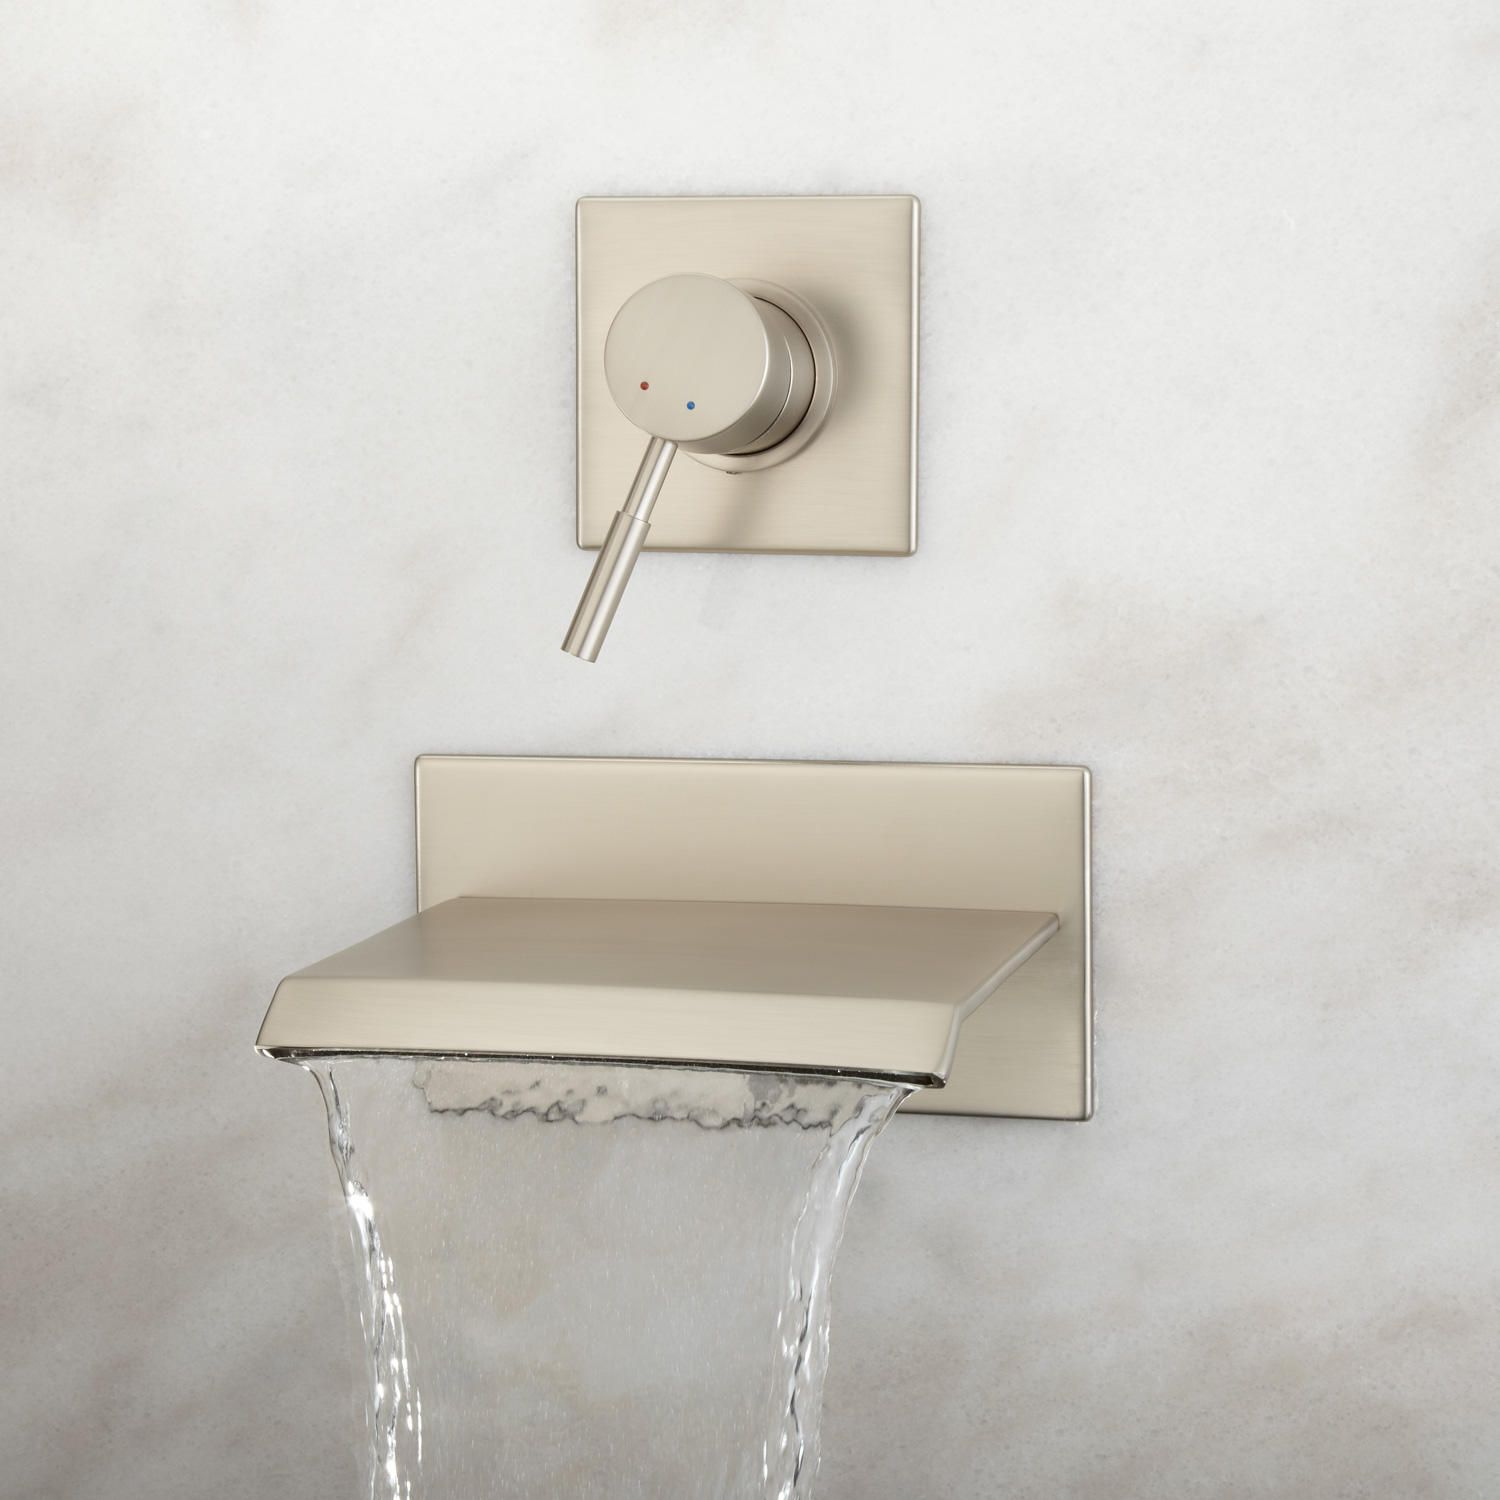 Fancy Algorithm One-Piece Elongated Toilet - Ada Compliant - Toilets And for Wall Mounted Bathroom Faucets Brushed Nickel